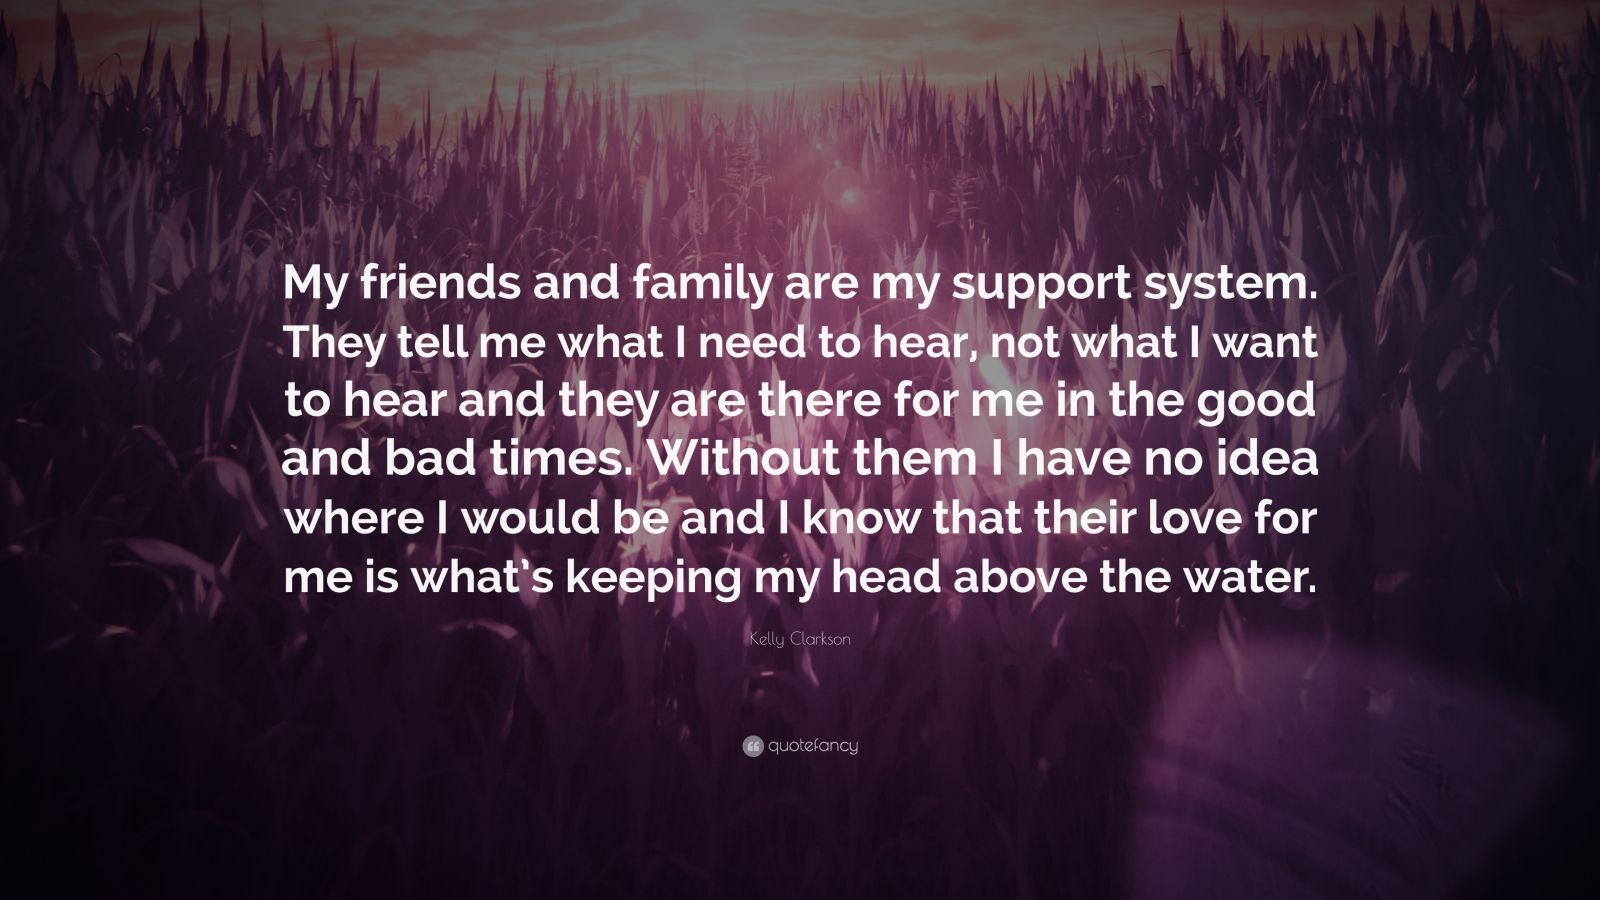 "kelly clarkson quote ""my friends and family are my support system"